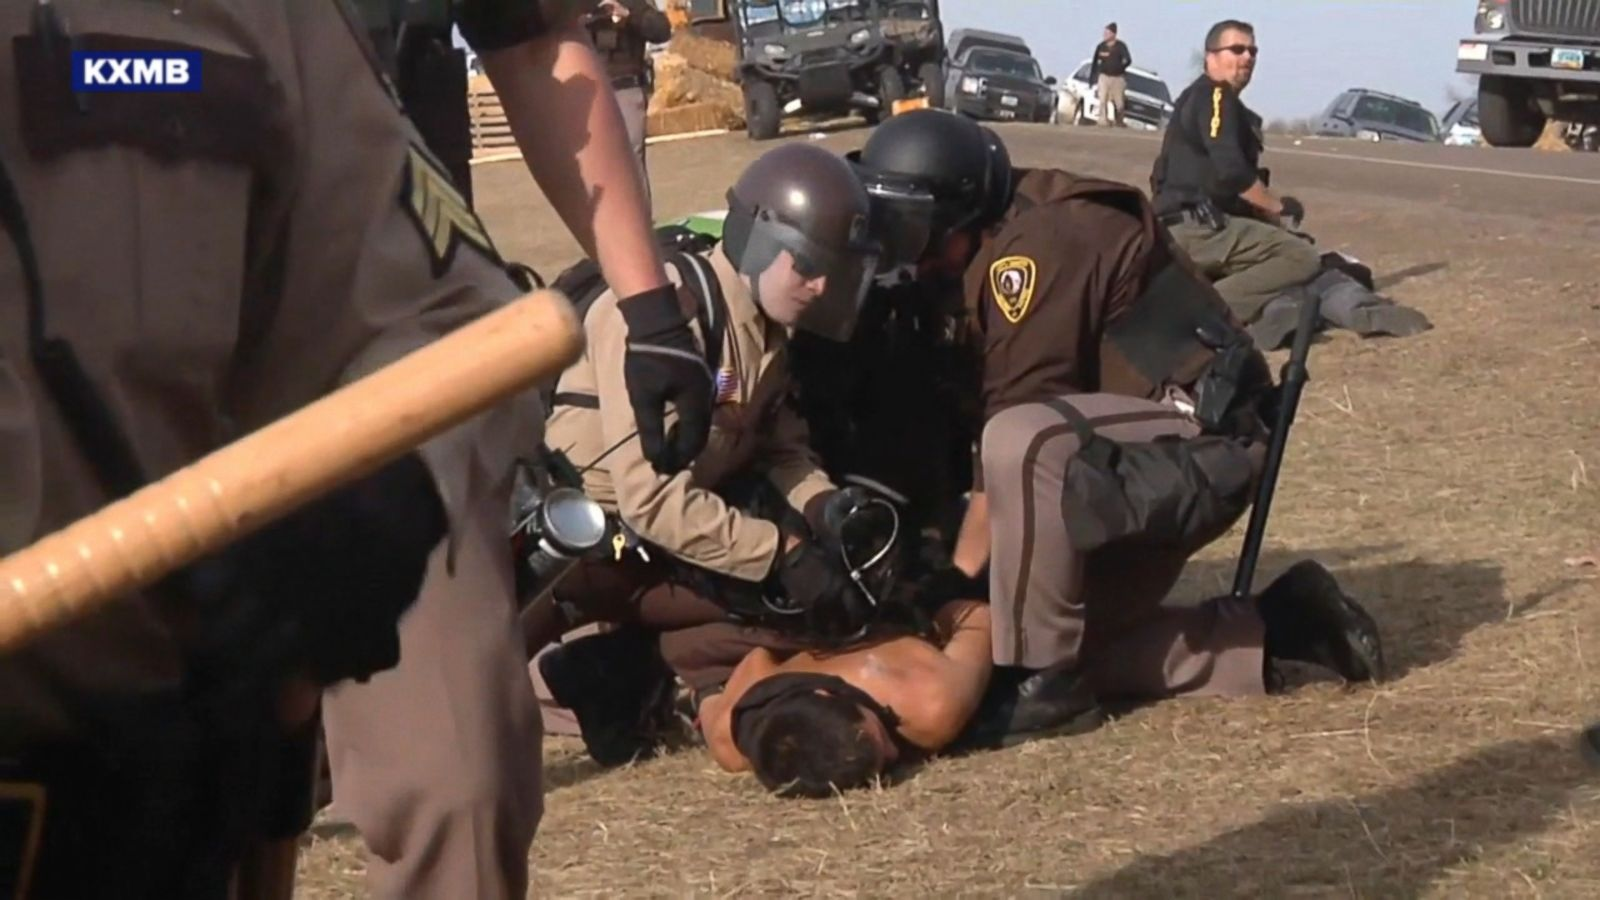 Police arrested 141 people at a protest against the Dakota Access Pipeline in North Dakota today as officers attempted to disperse the crowd, authorities said.